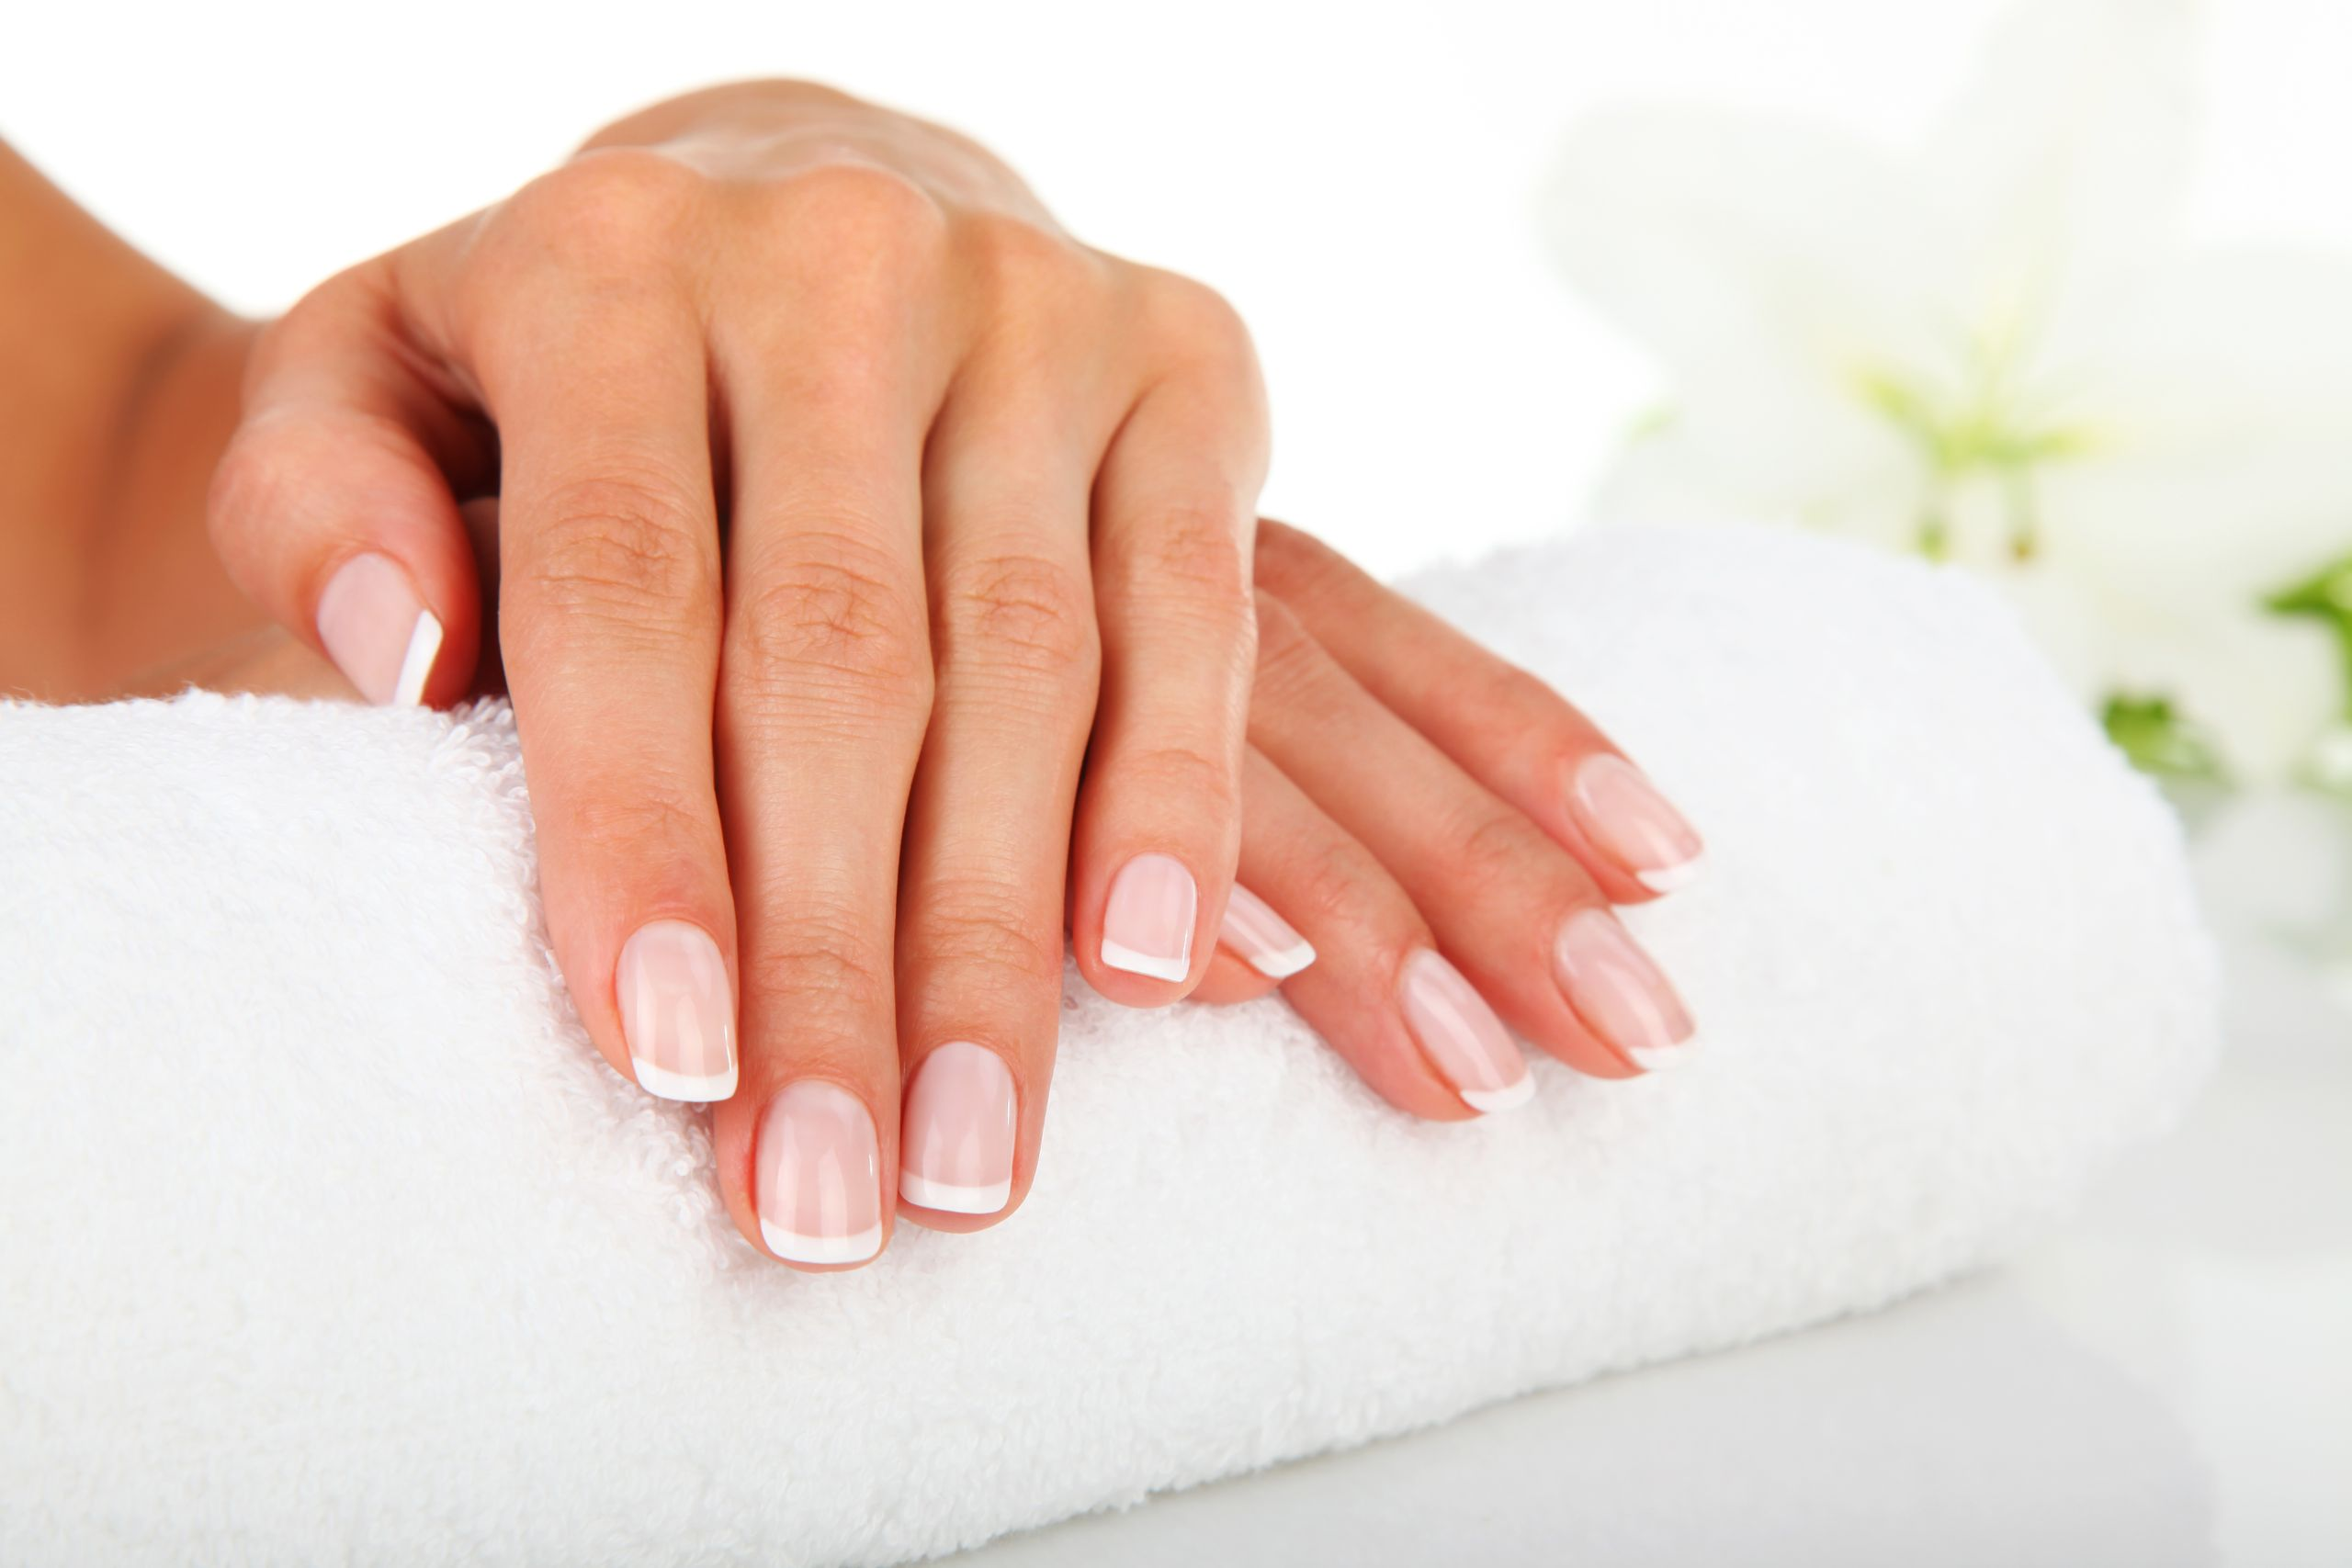 8 Best Remedies for Brittle Nails